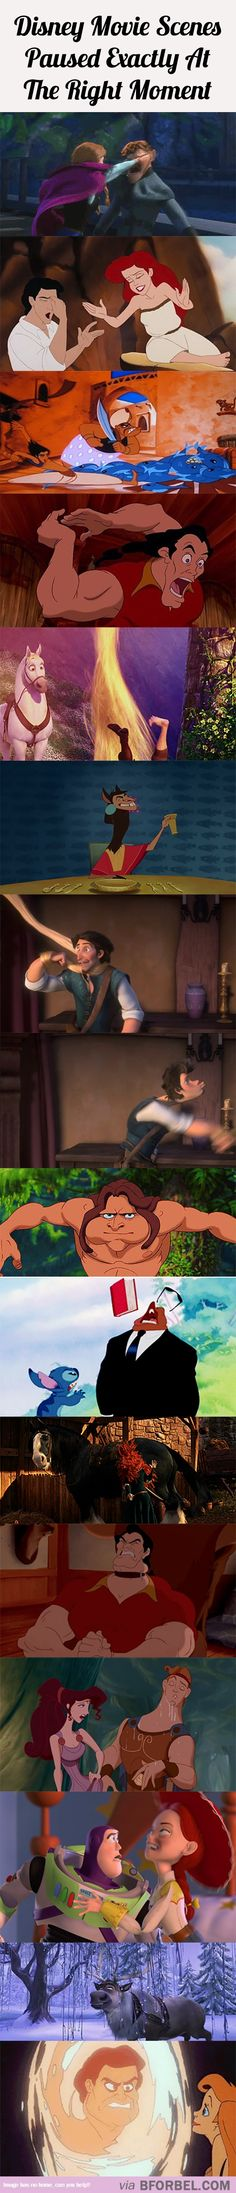 16 Disney Movie Scenes Paused At Exactly The Right Moment…